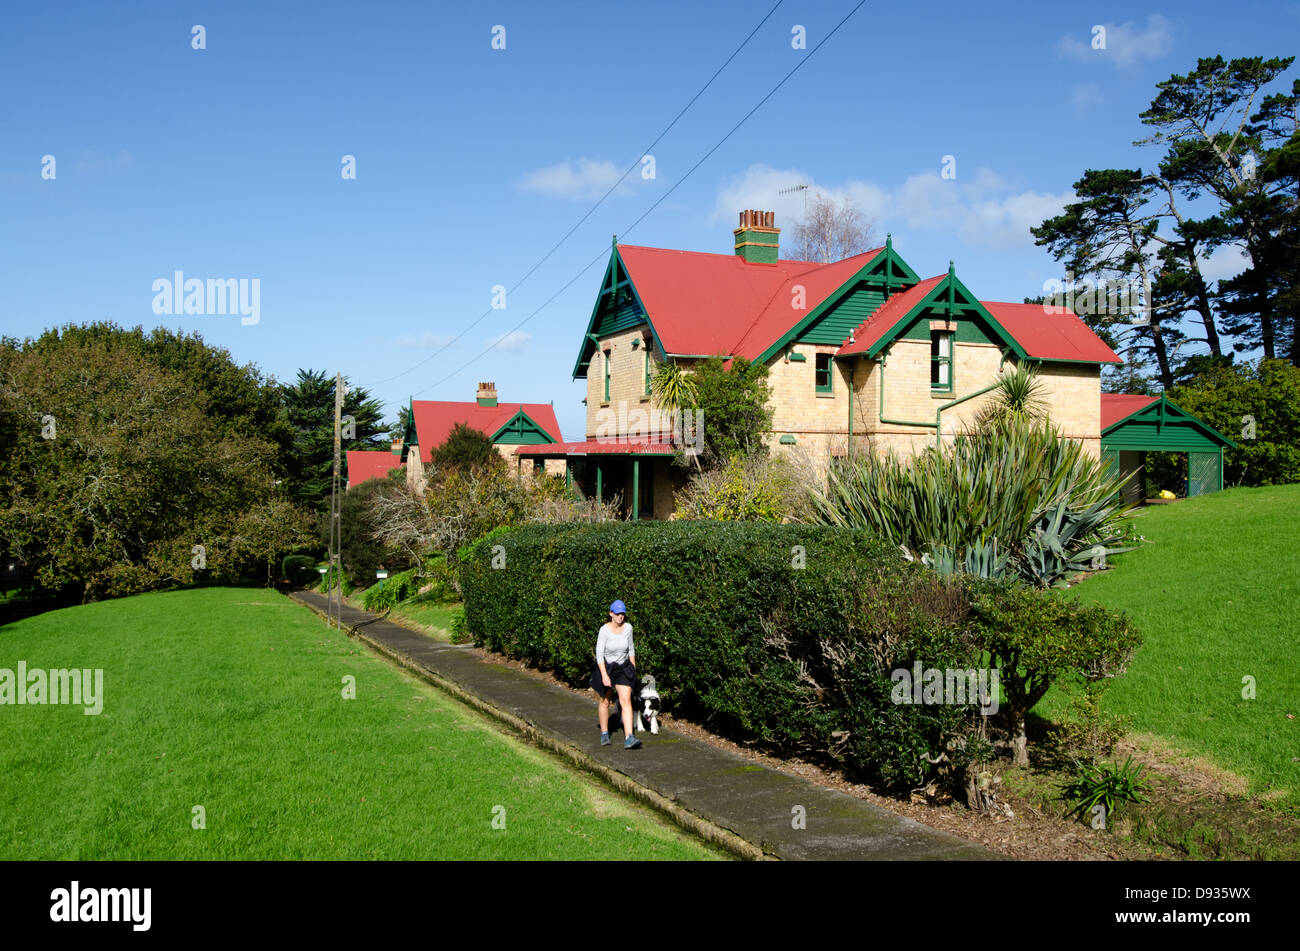 Chelsea Sugar Refinery village and housing in Highbury, Birkenhead, Auckland city, New Zealand - Stock Image